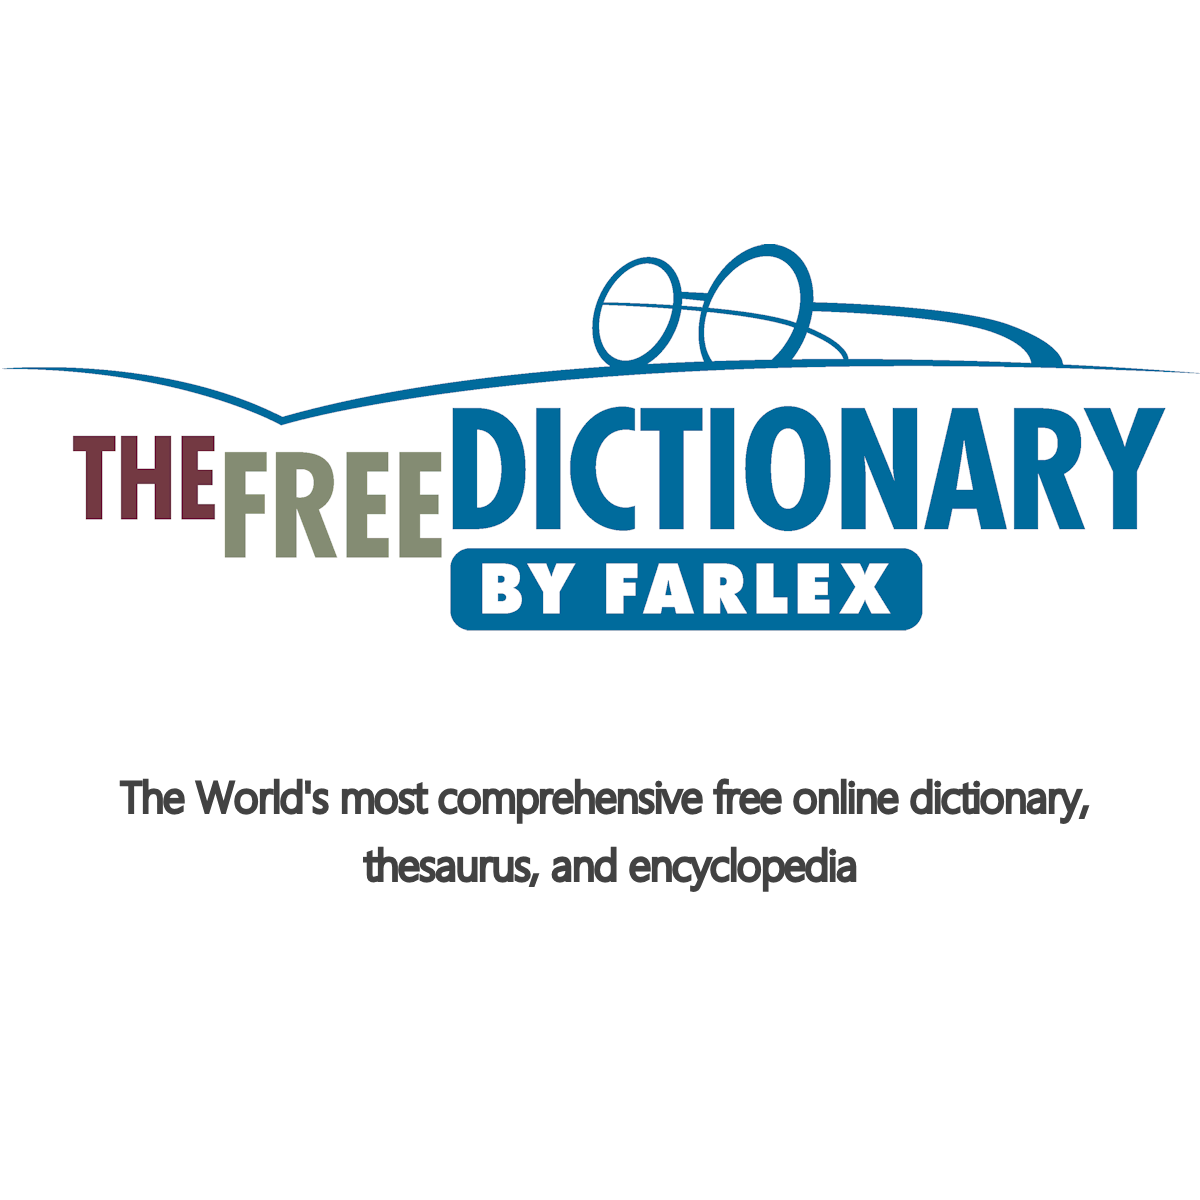 Dictionary, Encyclopedia and Thesaurus - The Free Dictionary